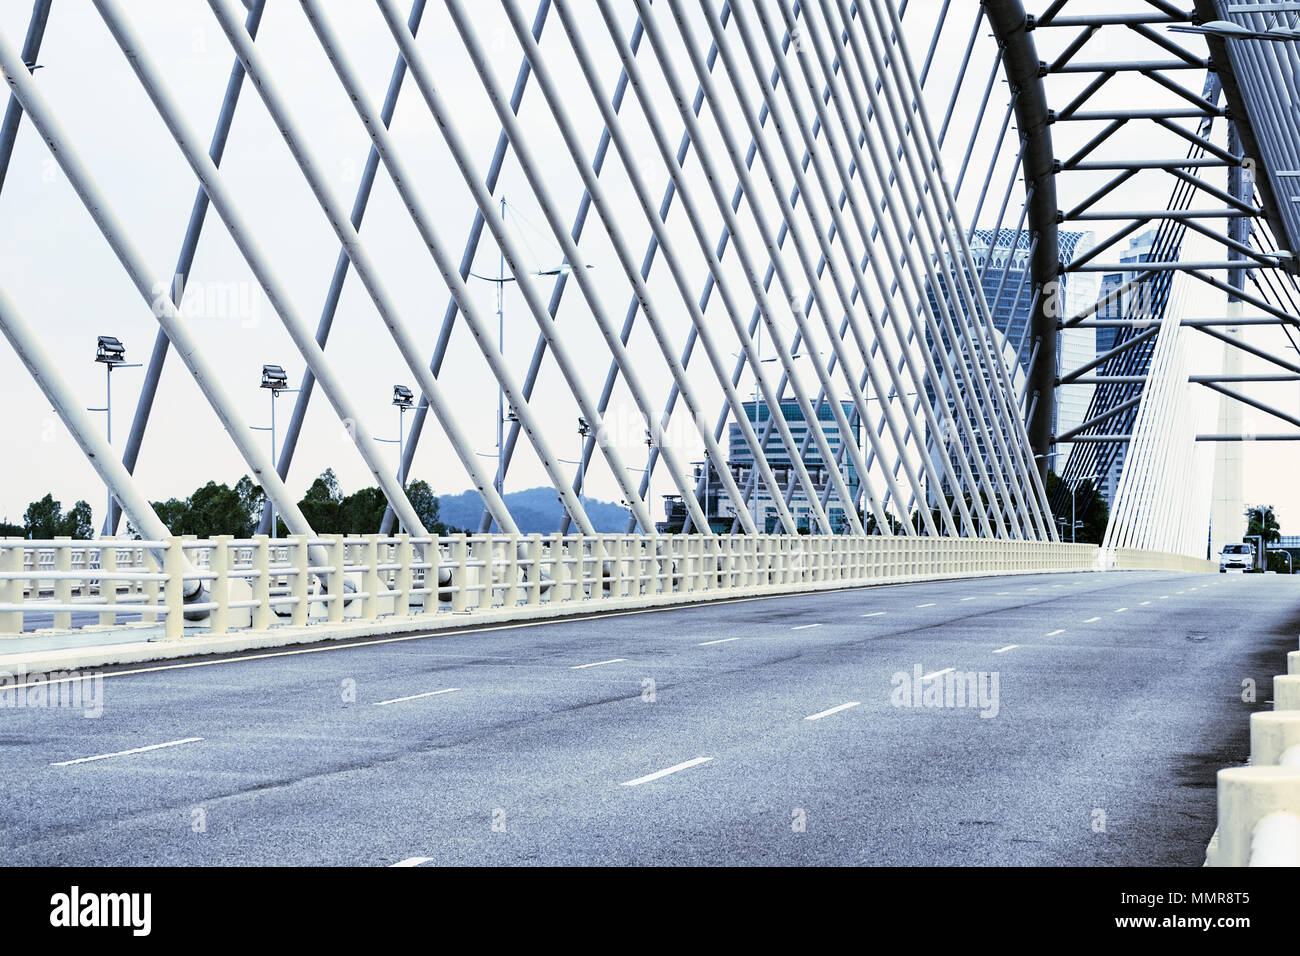 Details of modern architecture - an empty asphalt road on a large bridge in Cyberjaya, Malaysia. Toned in cool colors, cyan. - Stock Image